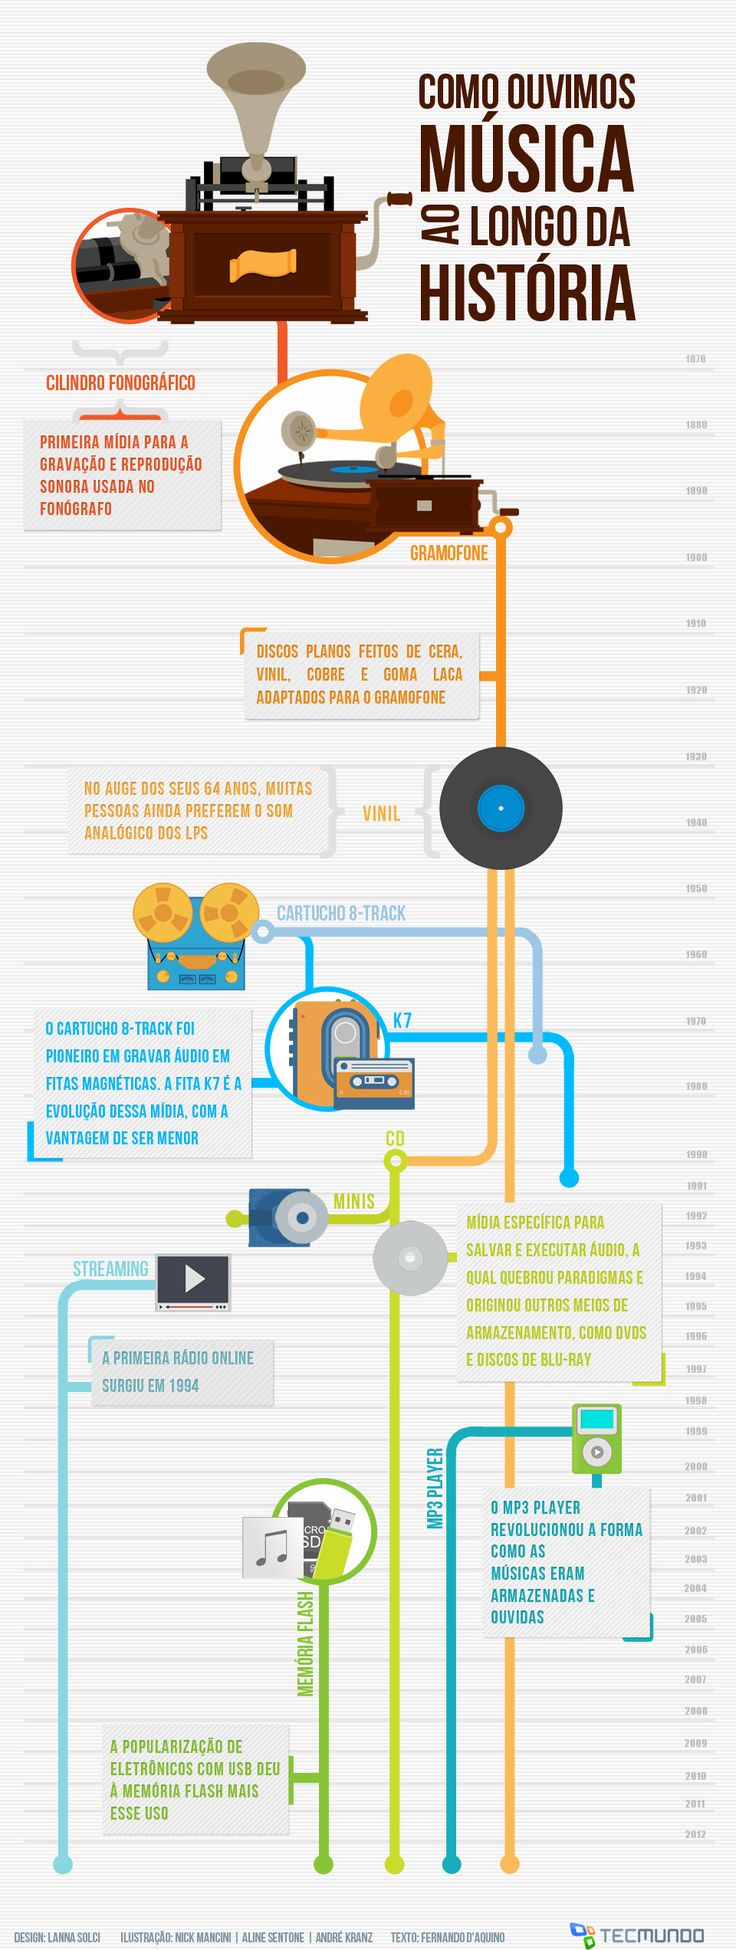 How we listened music along the history? A complete timeline about storage and reproduction of music.